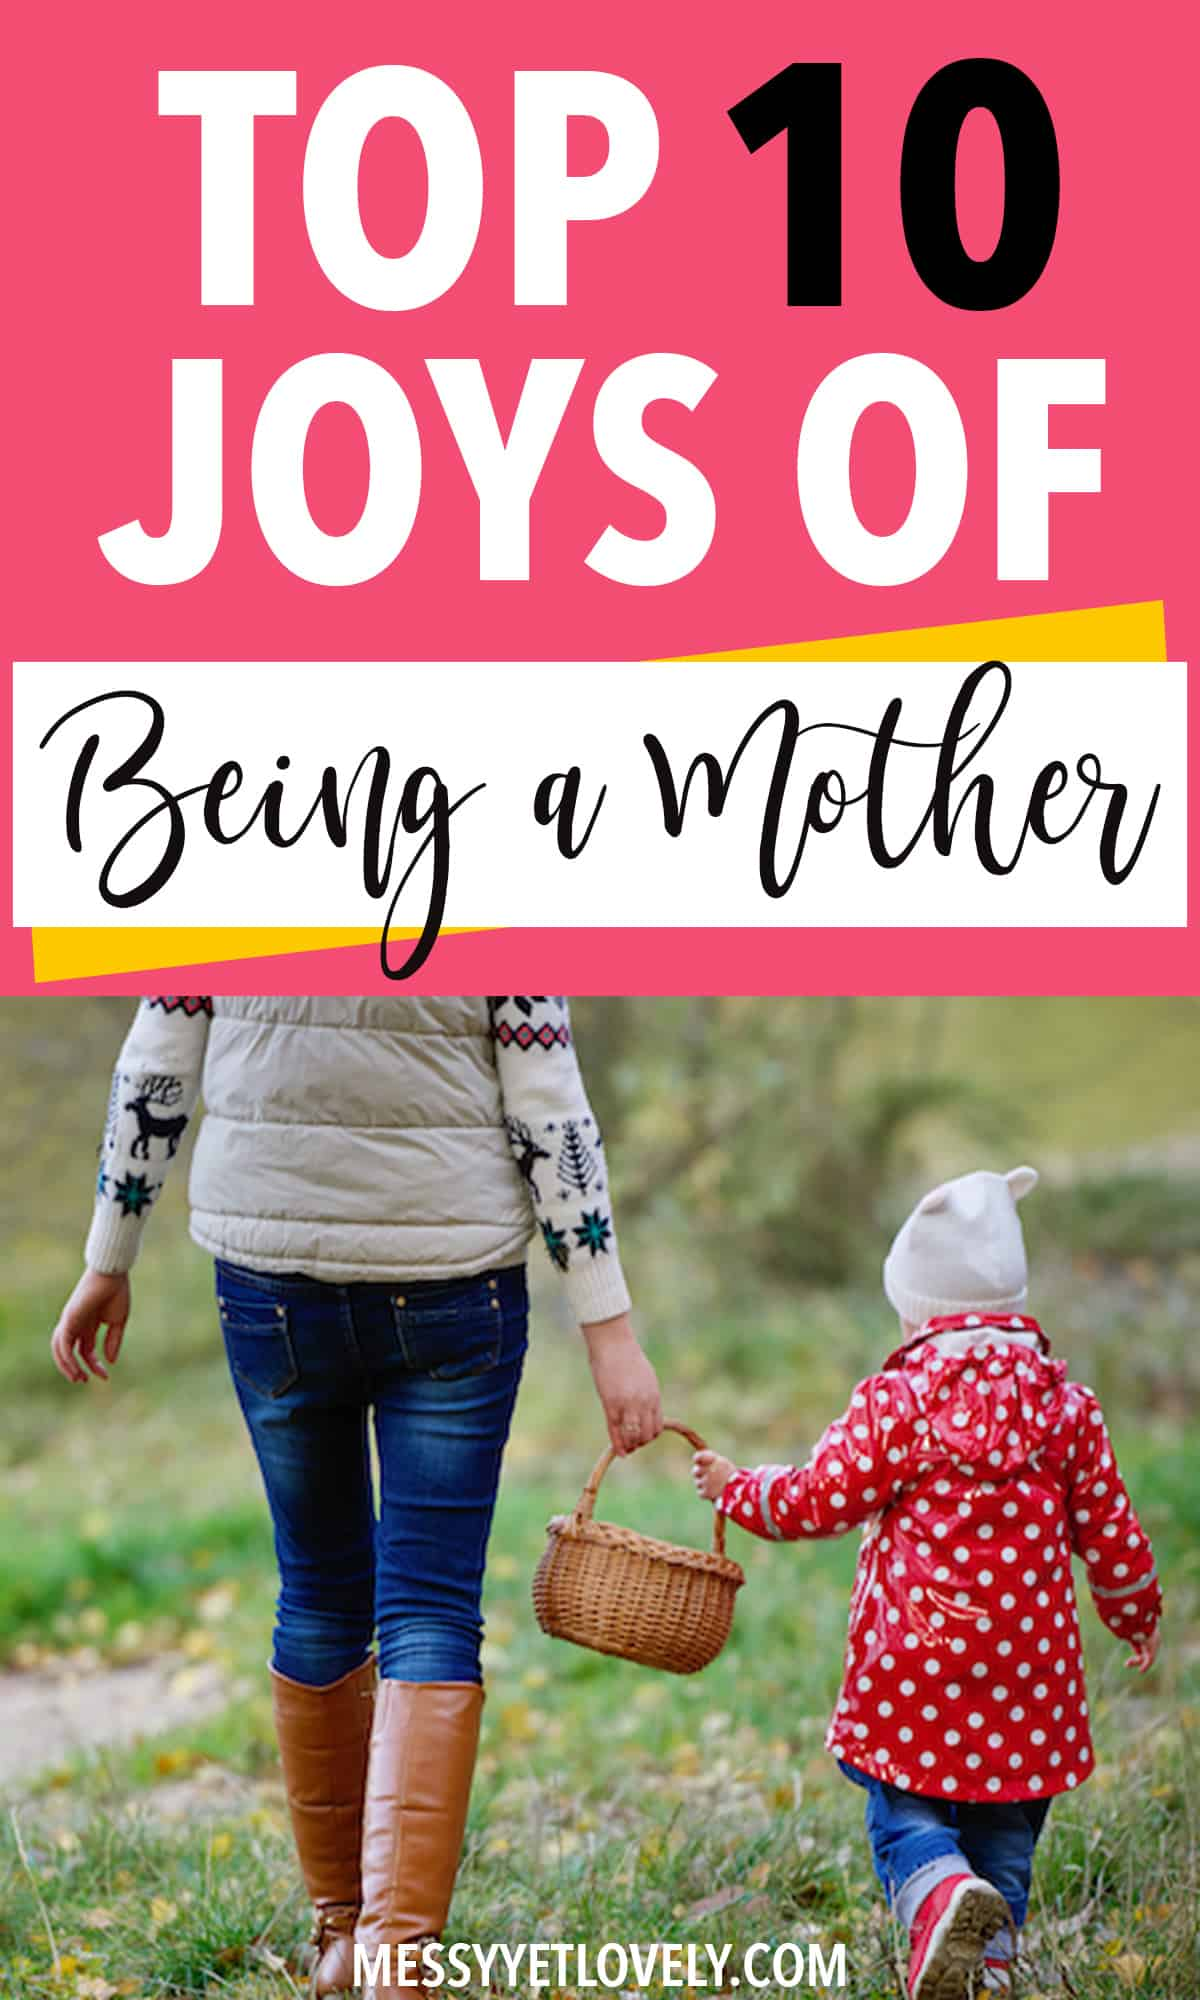 Life with children may not be always easy. We transform as people when we become mothers. Our lives are changed forever. But do we forget about the pure joys of motherhood in the chaos of daily life? Are we grateful enough for the joys that our children bring? Let's find out what the top 10 joys of being a mother are.